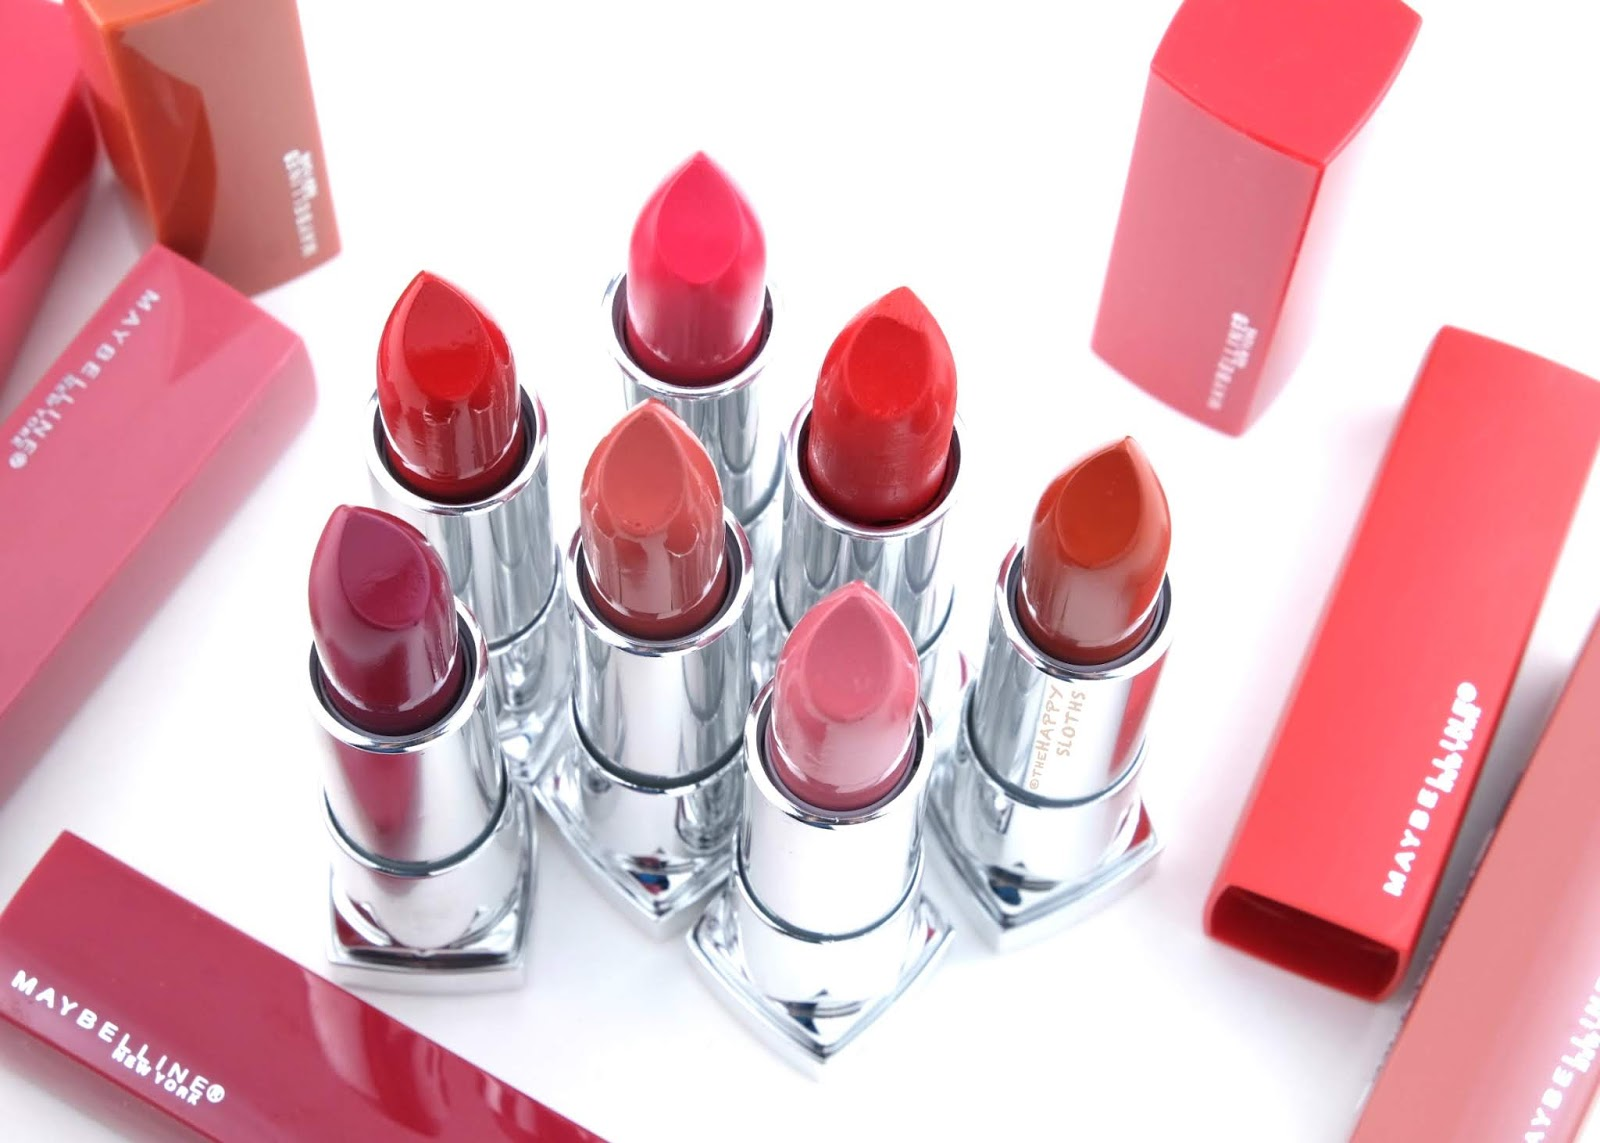 Maybelline | Made for All Lipstick by Color Sensational: Review and Swatches